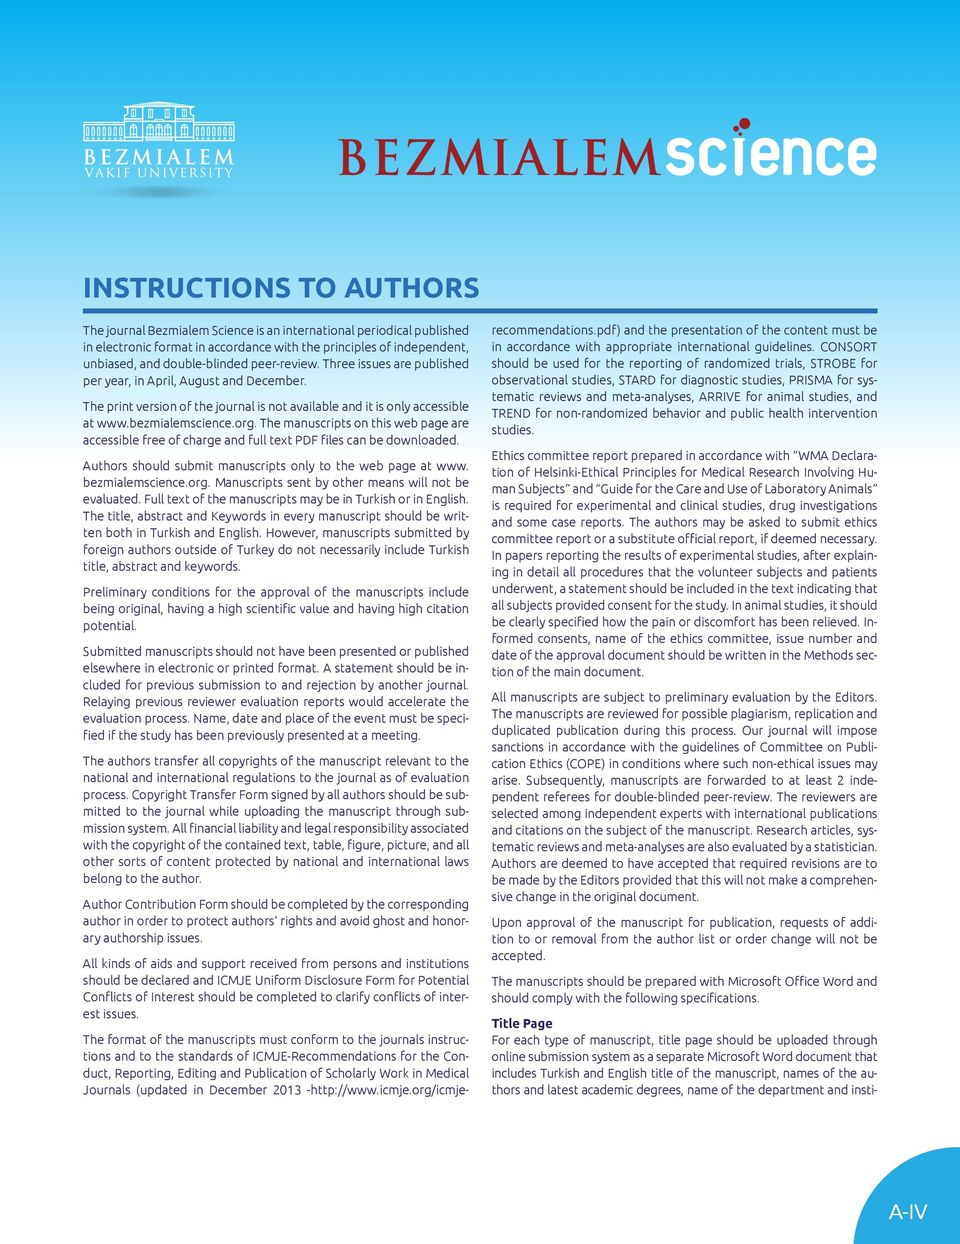 The manuscripts on this web page are accessible free of charge and full text PDF files can be downloaded. Authors should submit manuscripts only to the web page at www. bezmialemscience.org.